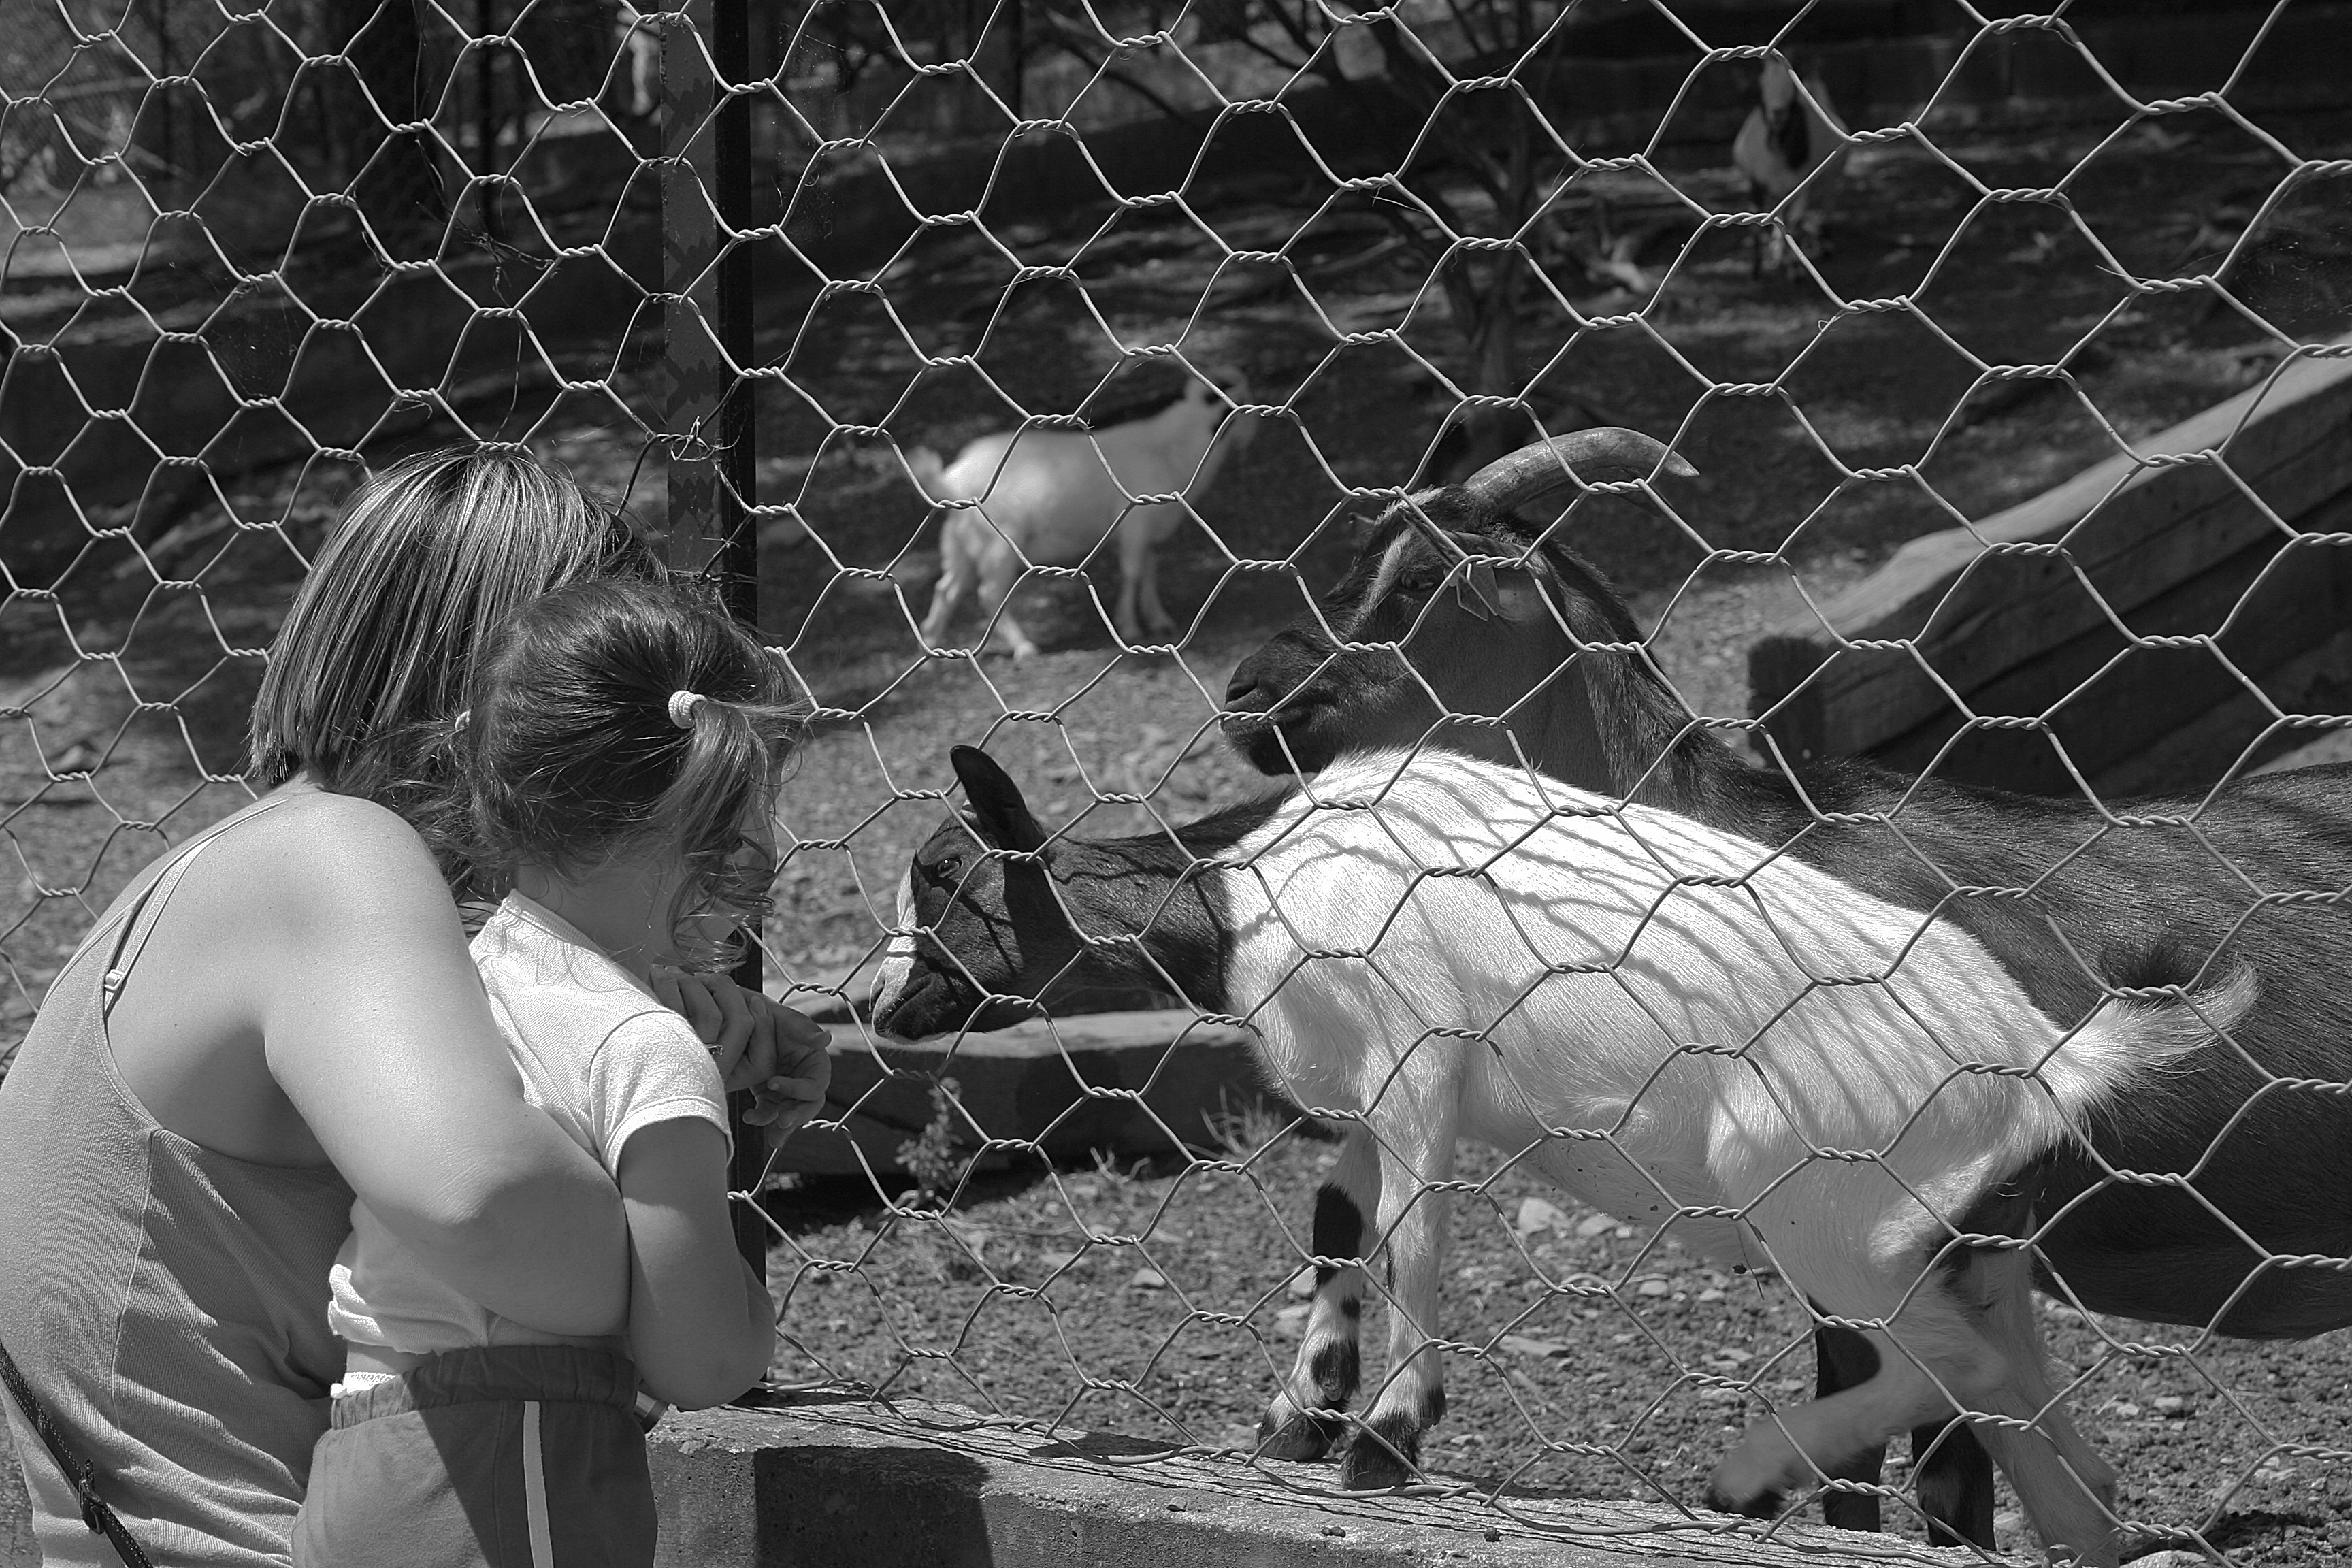 Silvia and Elisa with a goat – BW